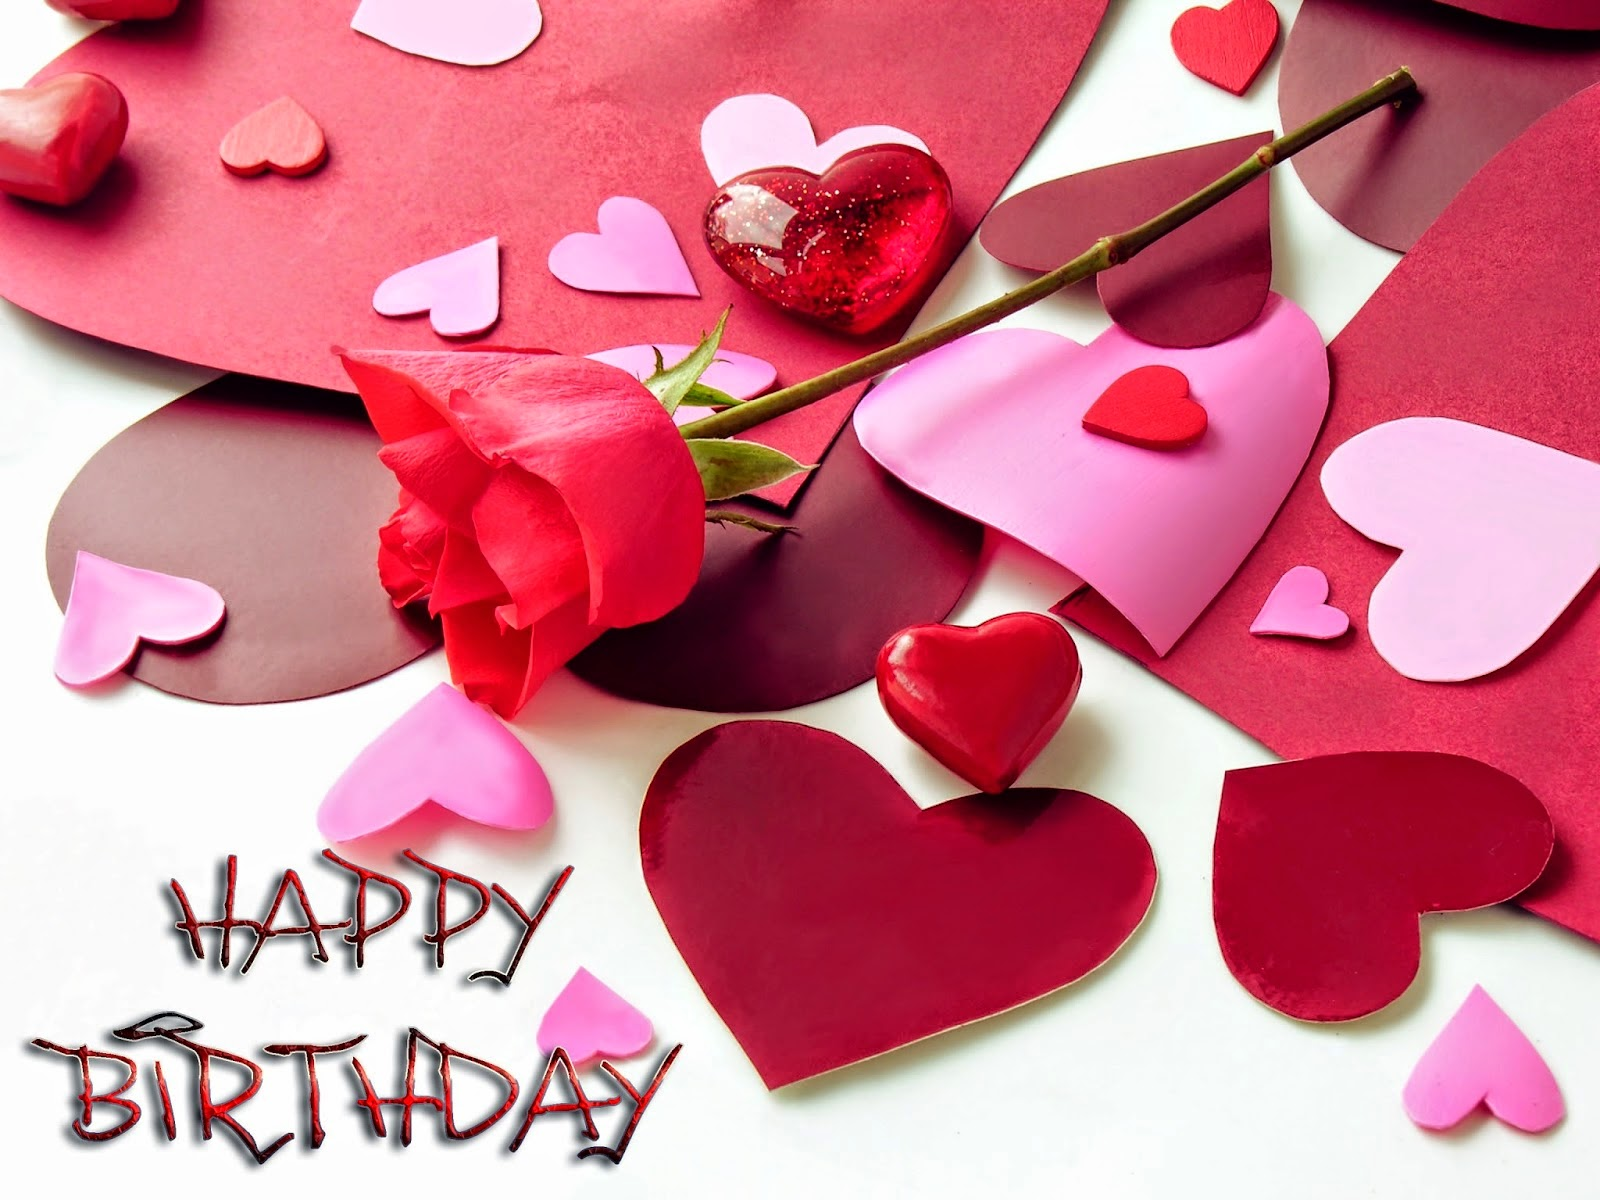 birthday wishes wallpaper for lover ; f11dc43e89a548cb9ed6c362faf1efaa